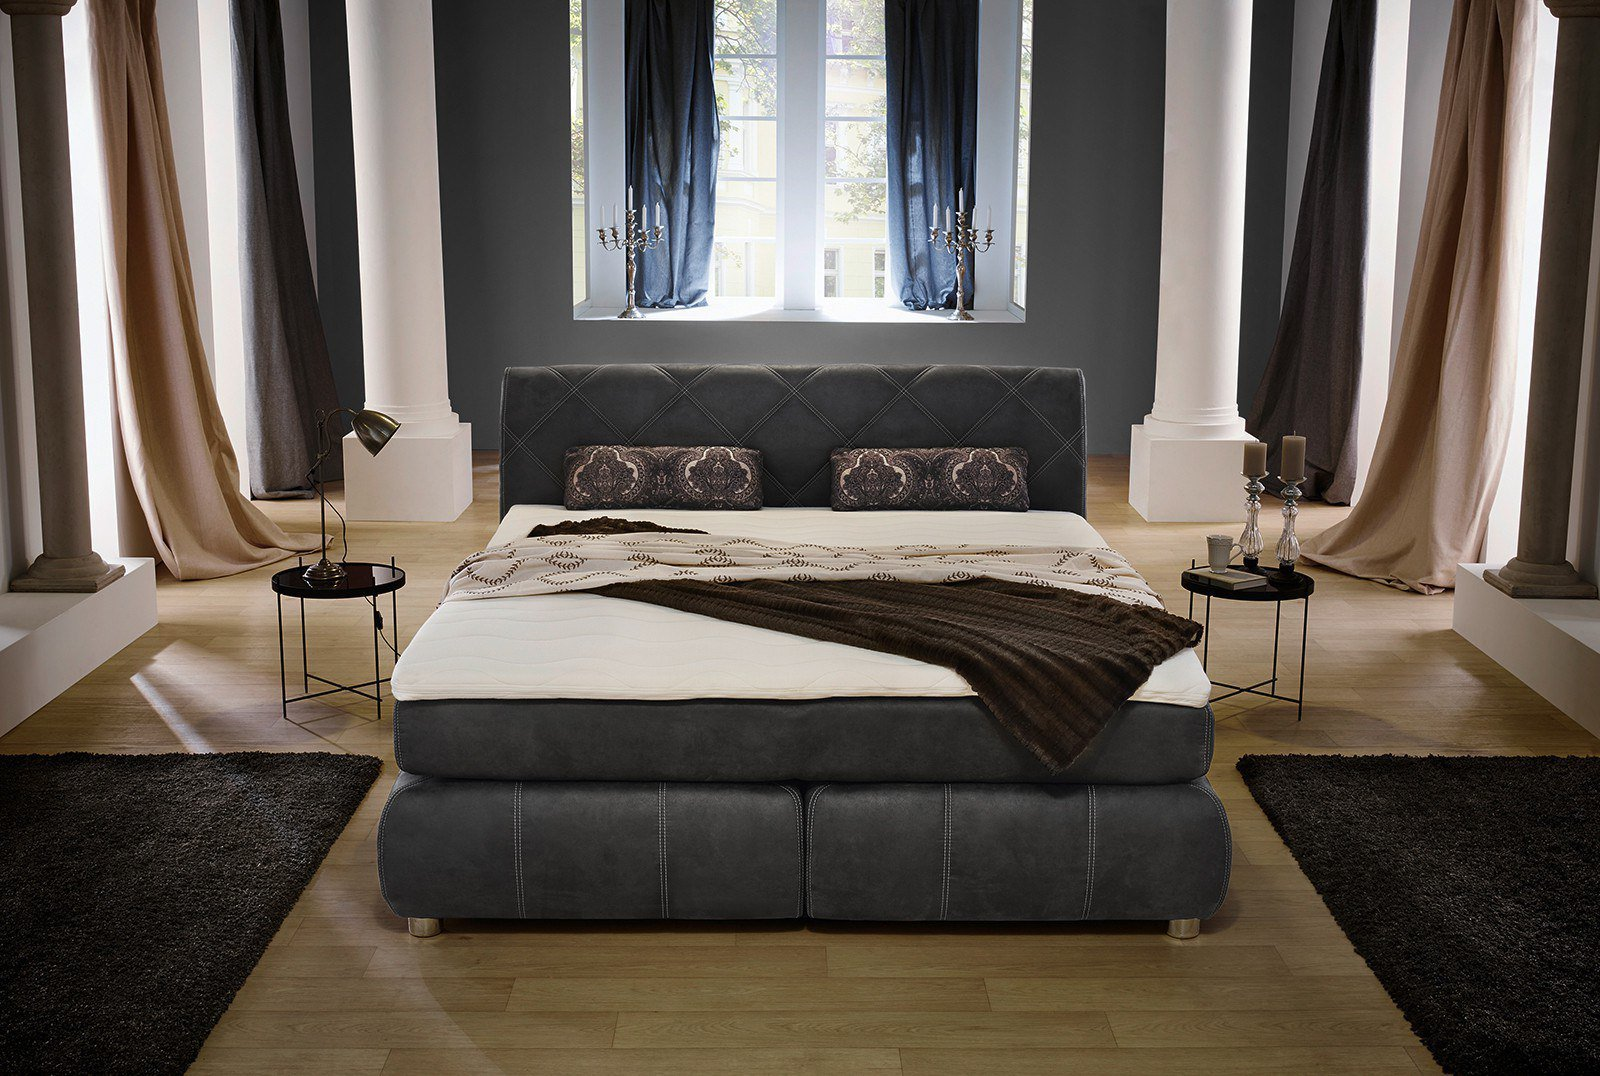 jockenh fer rebecca rosi boxspringbett 180 grau m bel letz ihr online shop. Black Bedroom Furniture Sets. Home Design Ideas